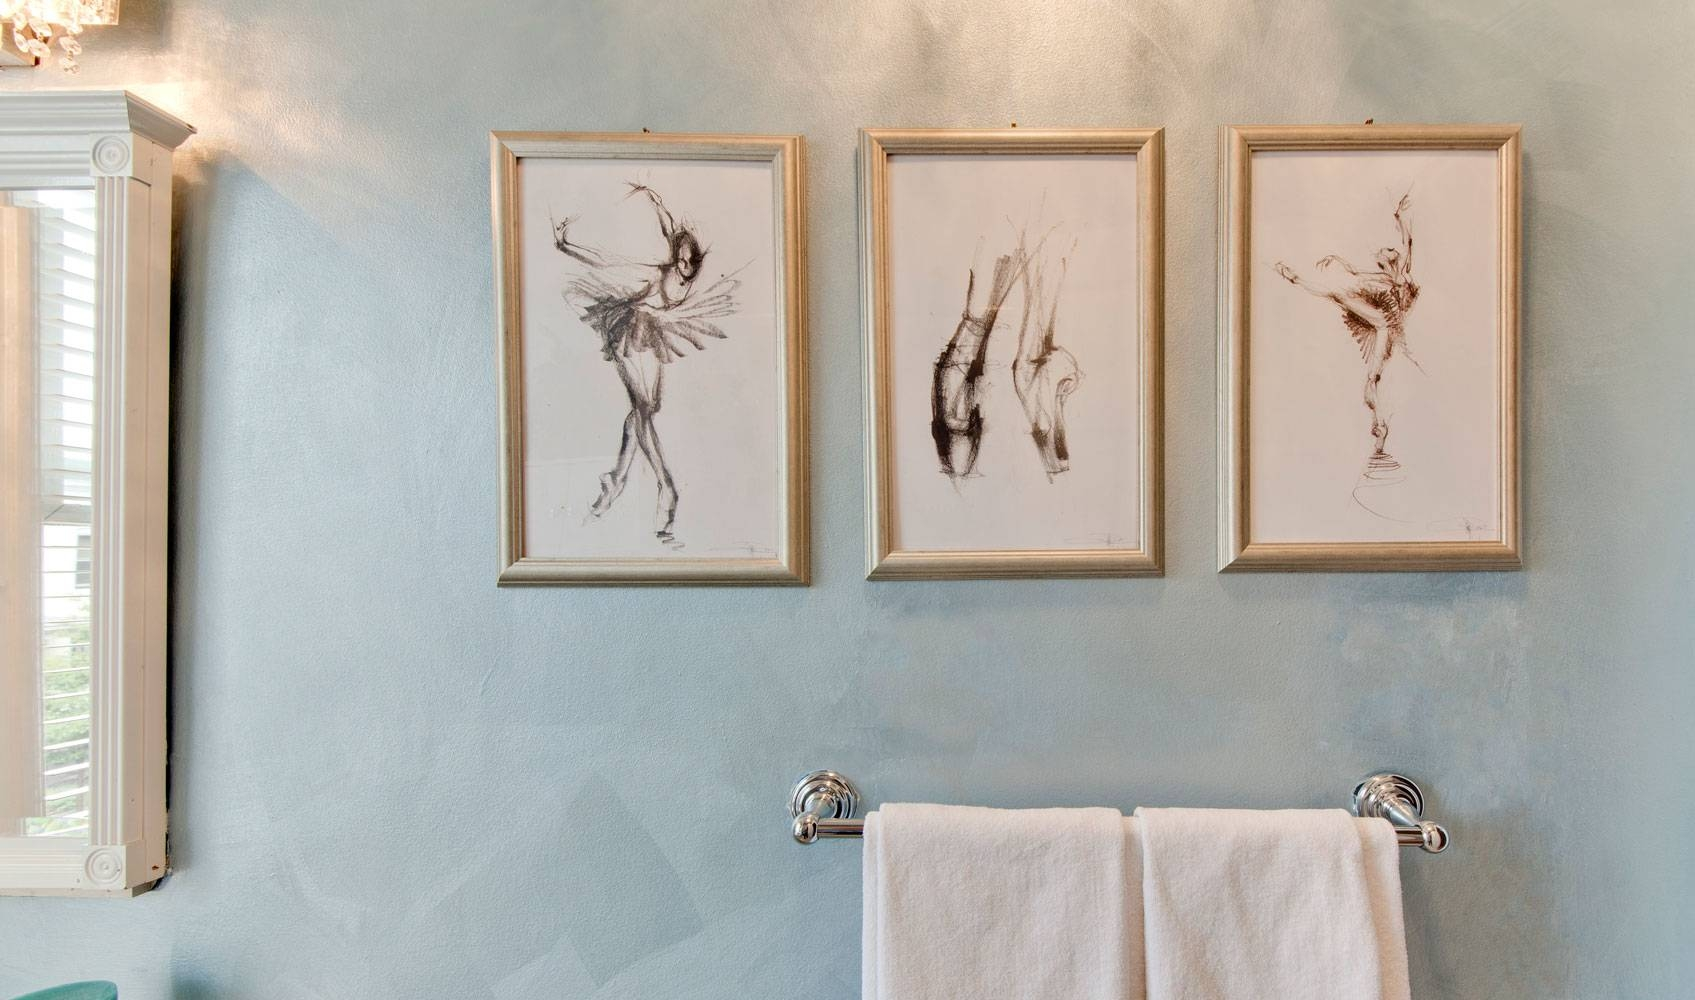 Bathroom : Incredible Bathroom Wall Art With Wooden Framed Hanging For 2017 Glamorous Wall Art (View 2 of 30)